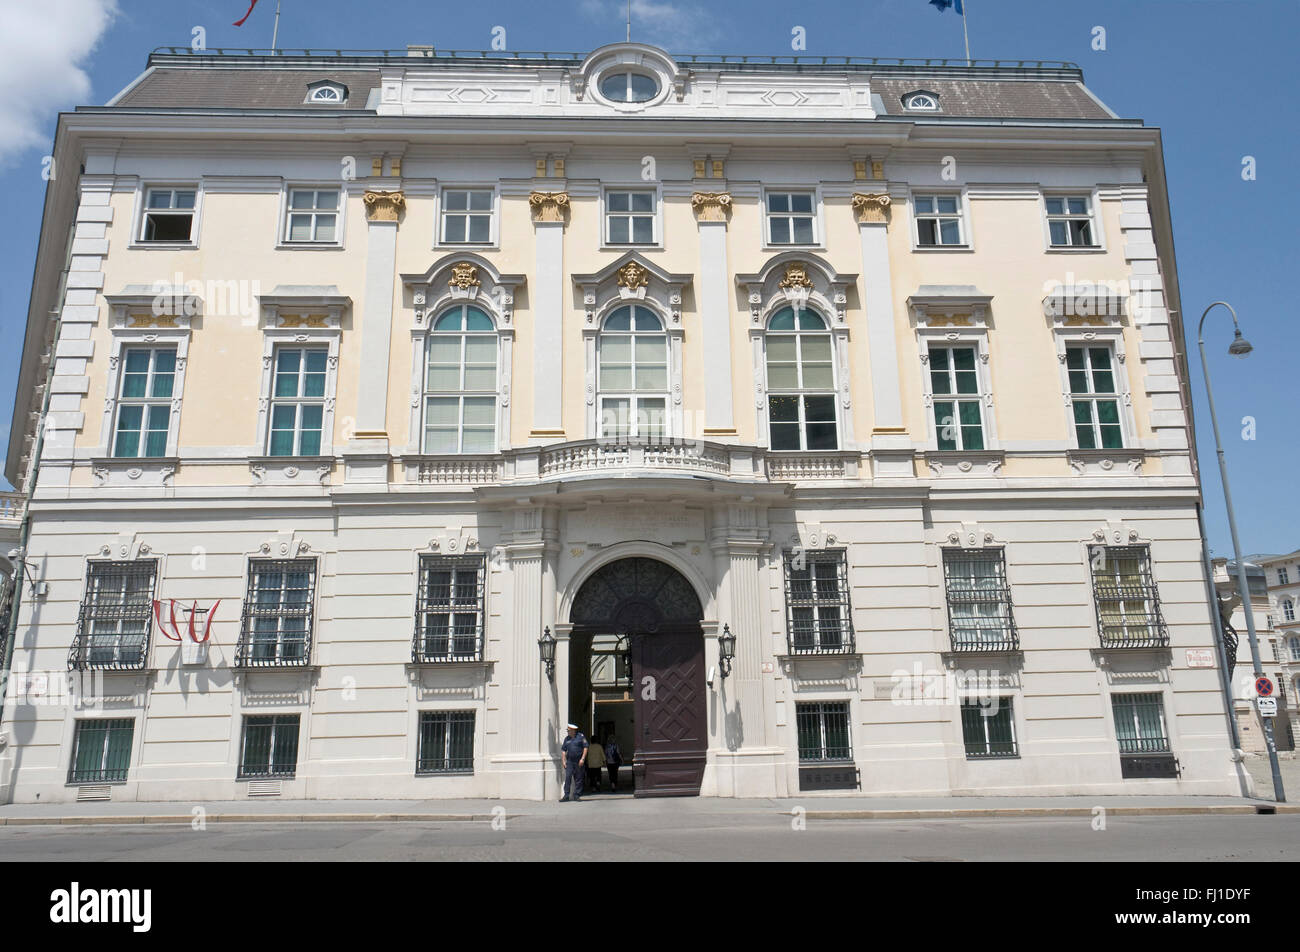 Austria, Vienna, Ballhausplatz, main façade of the Bundeskanzleramt, seat of the Austrian Federal Government. Stock Photo